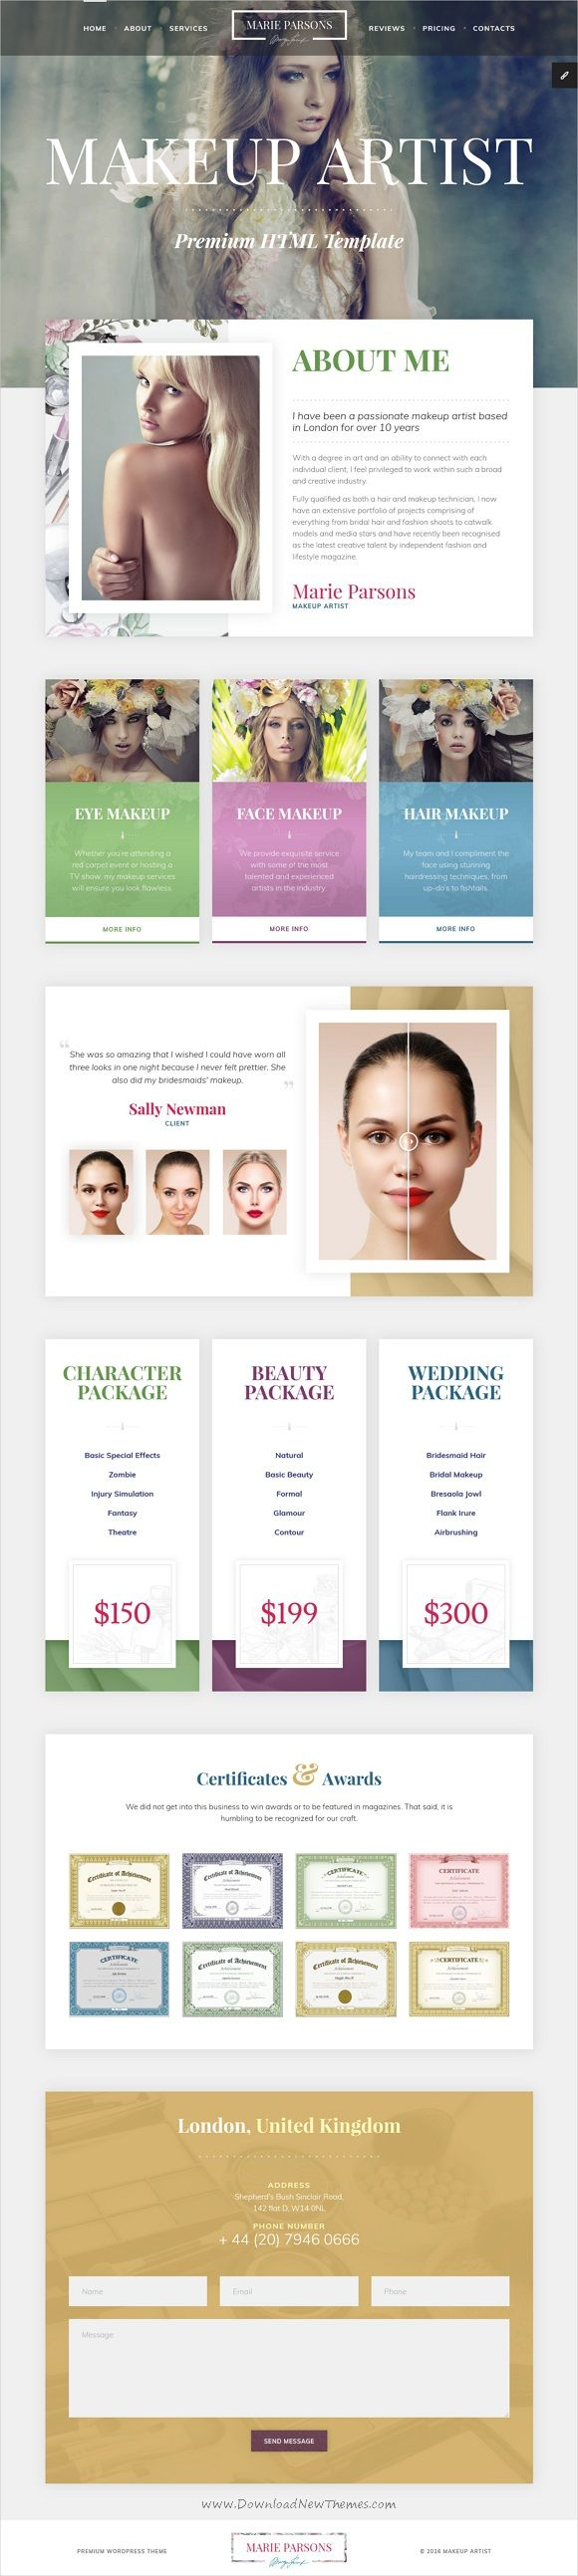 beginner makeup artist resume%0A Makeup Artist  Art HTML Template with Page Builder and Dashboard pages